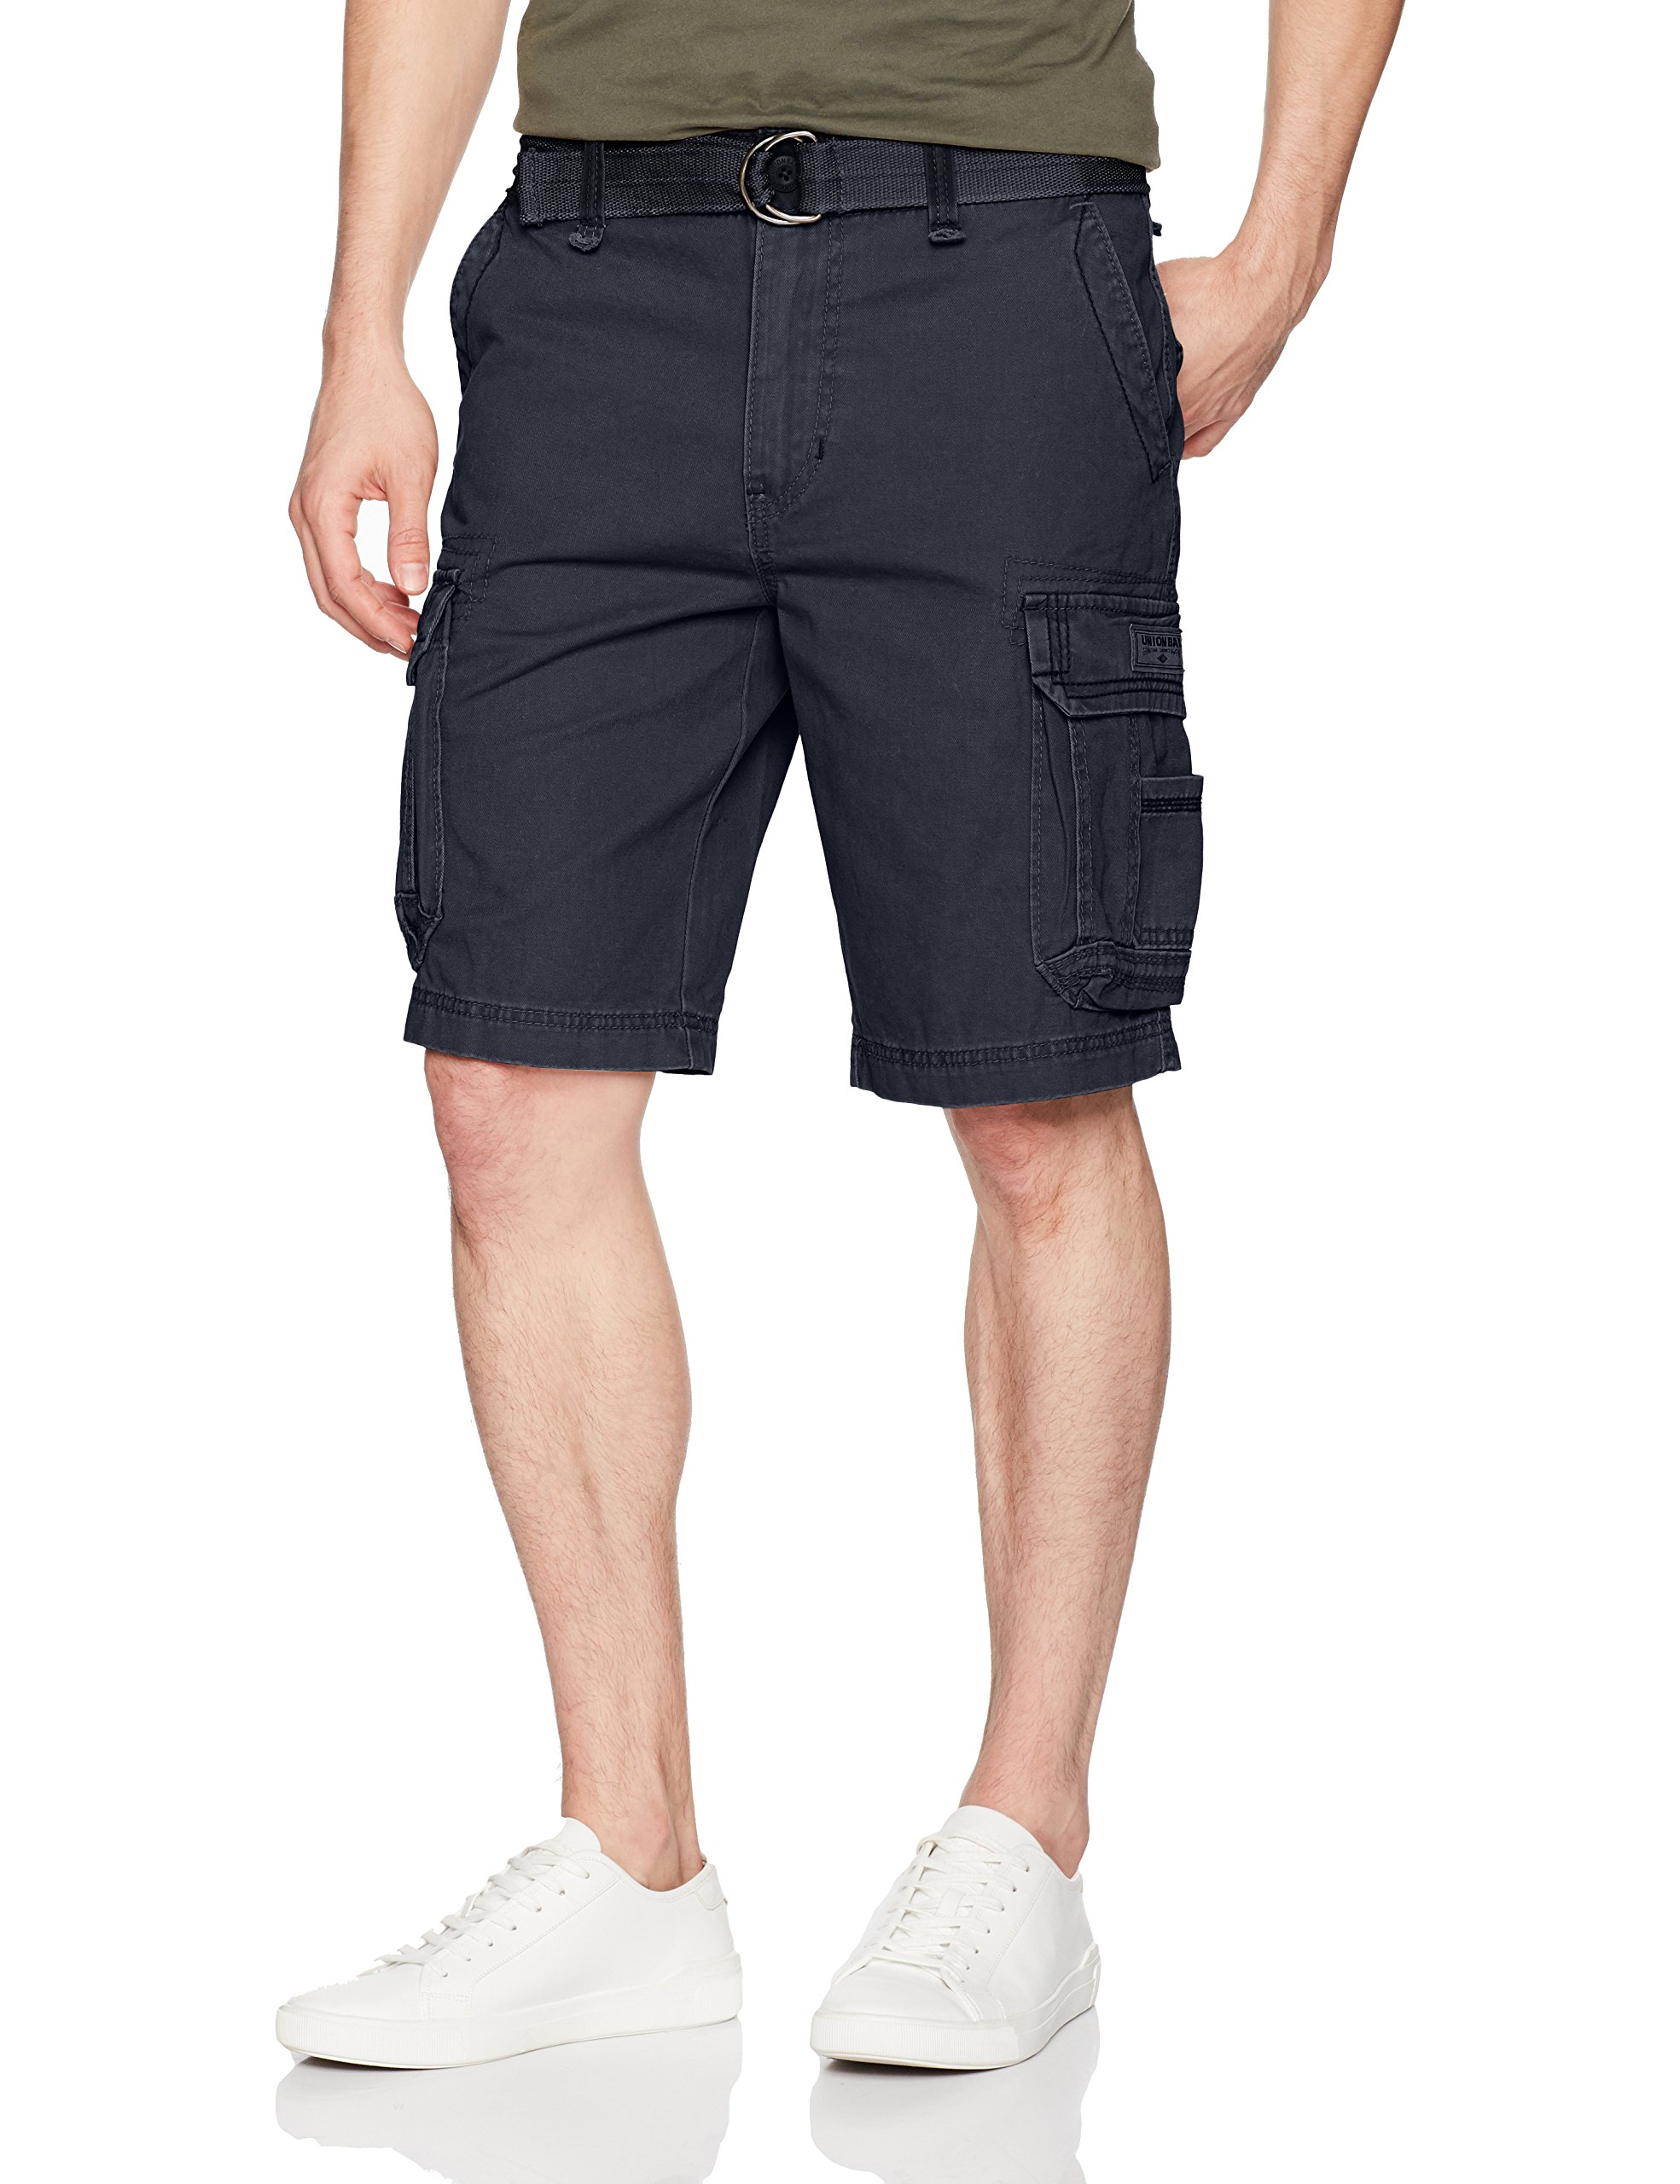 UNIONBAY Men's Survivor Belted Cargo Short-Reg and Big & Tall Sizes, True Navy, 52 by UNIONBAY (Image #1)